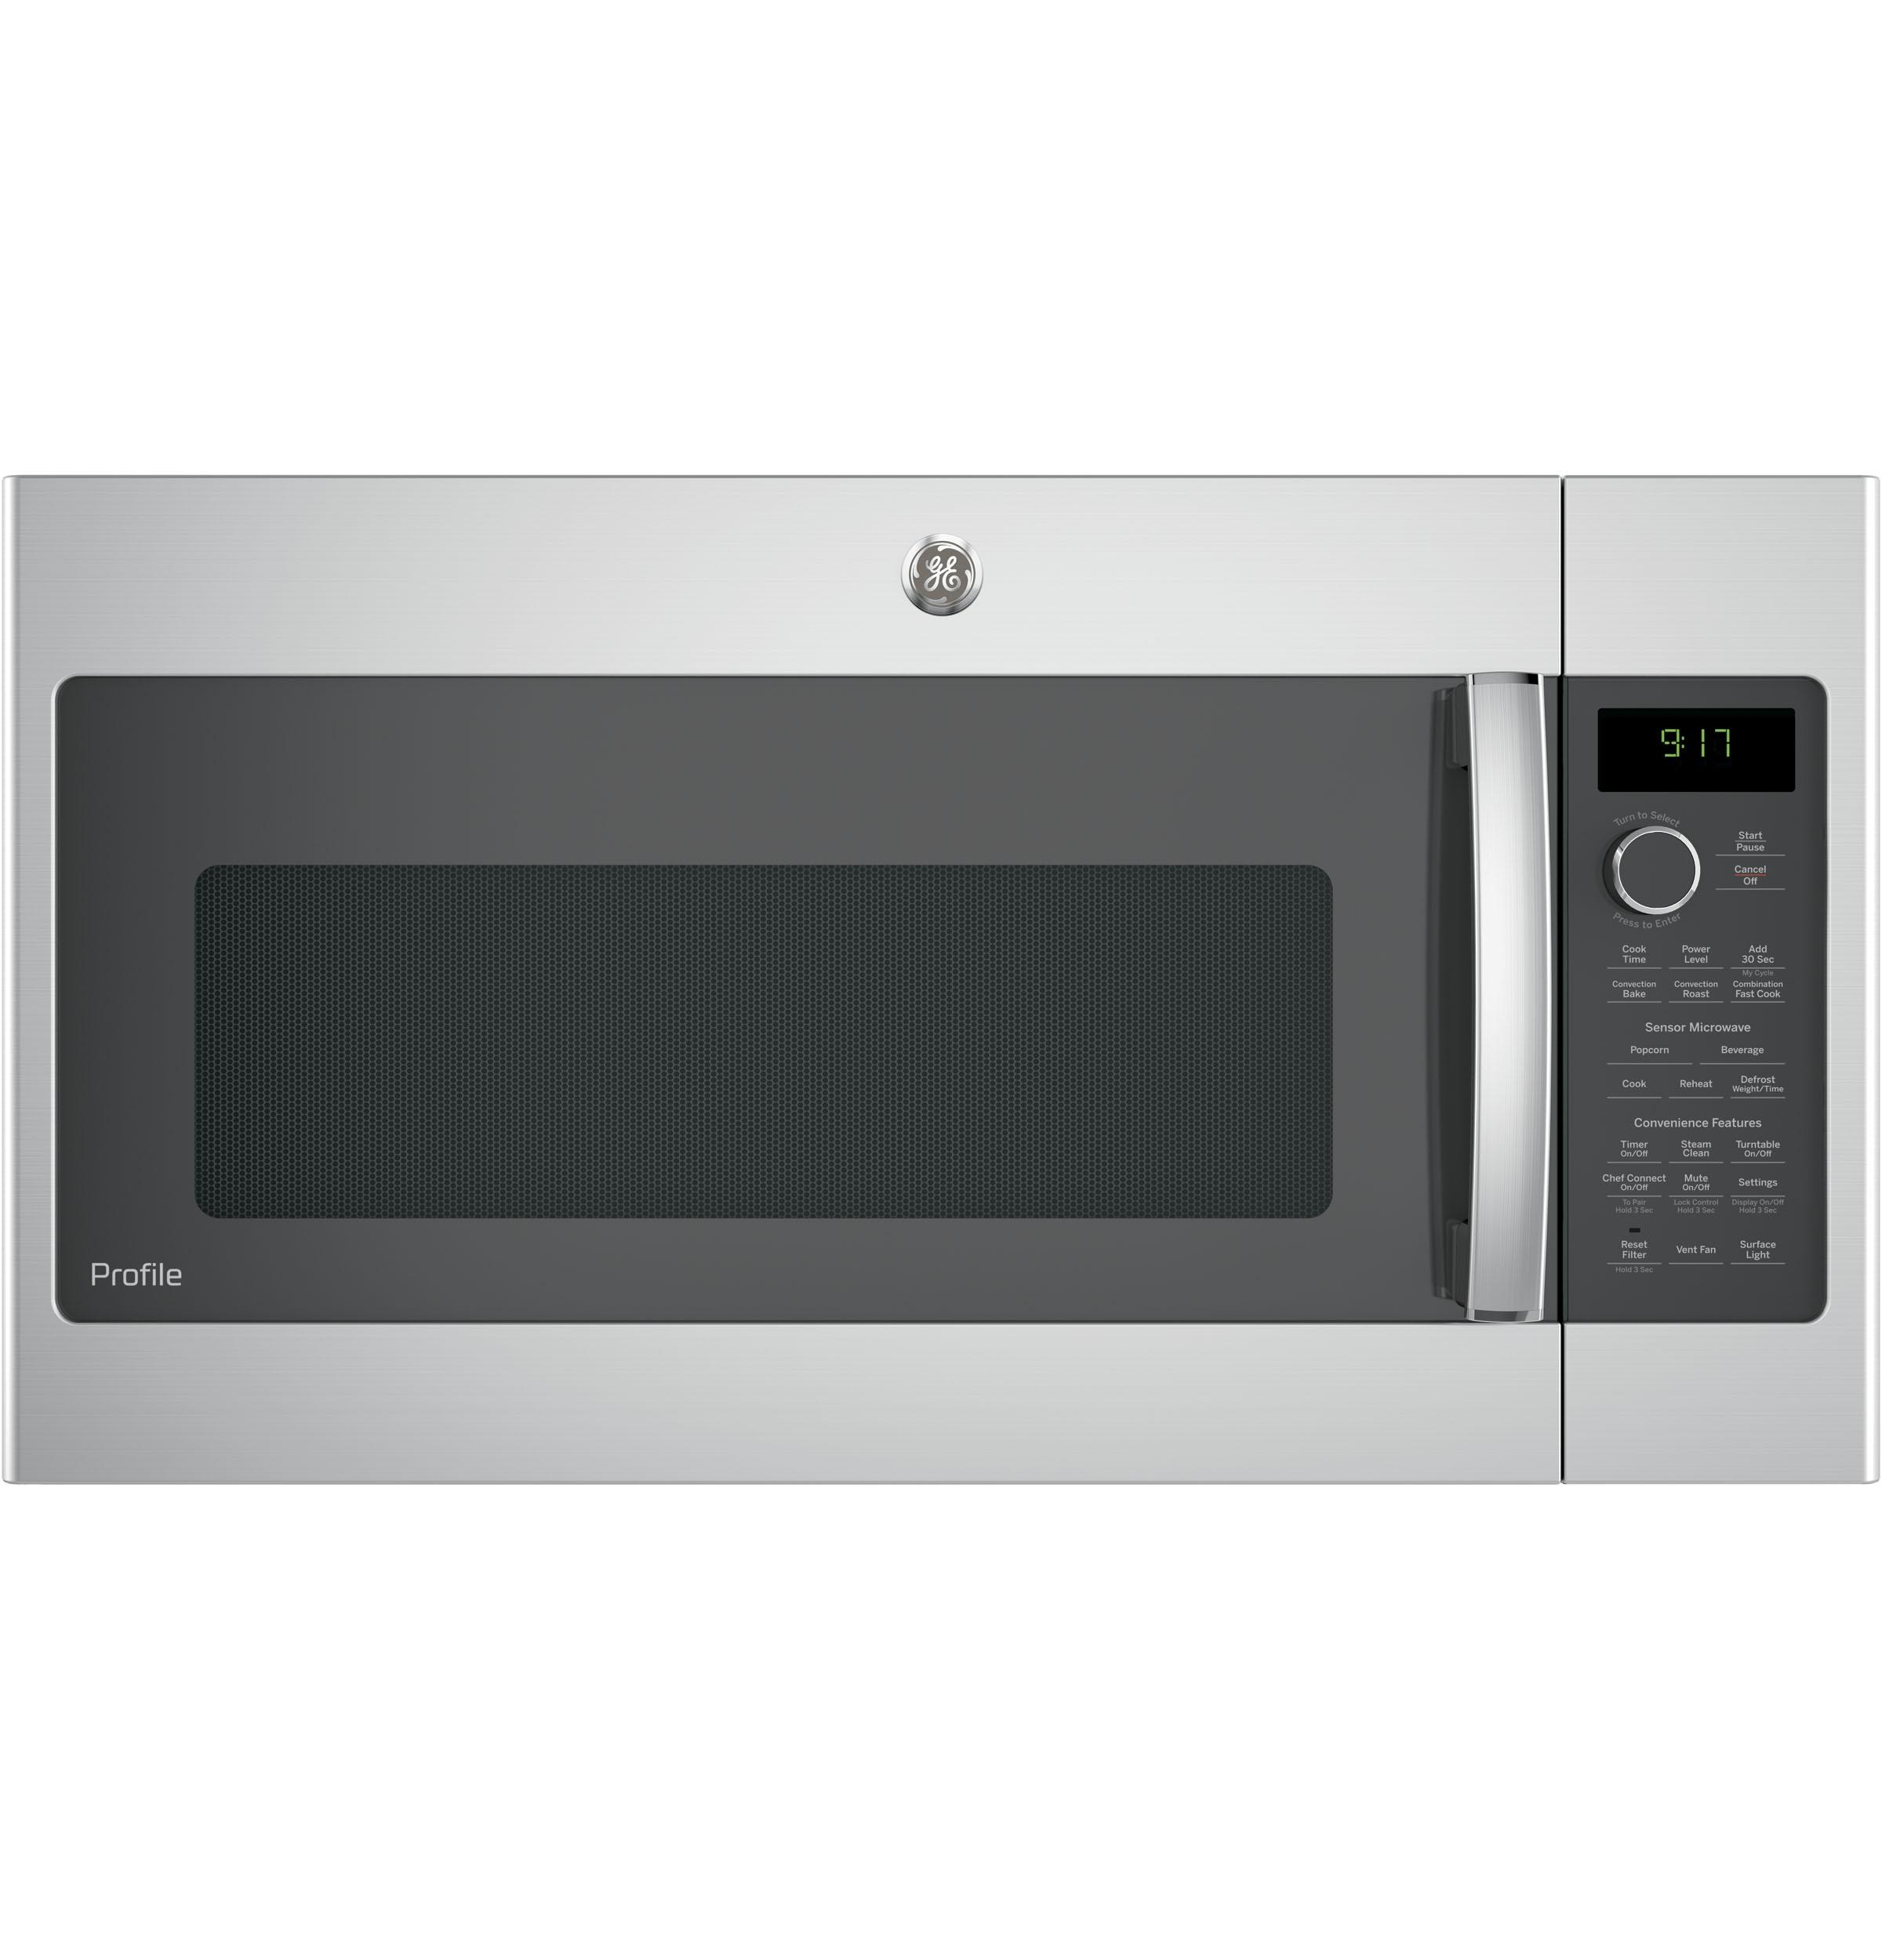 GE Profile(TM) Series 1.7 Cu. Ft. Convection Over-the-Range Microwave Oven  STAINLESS STEEL